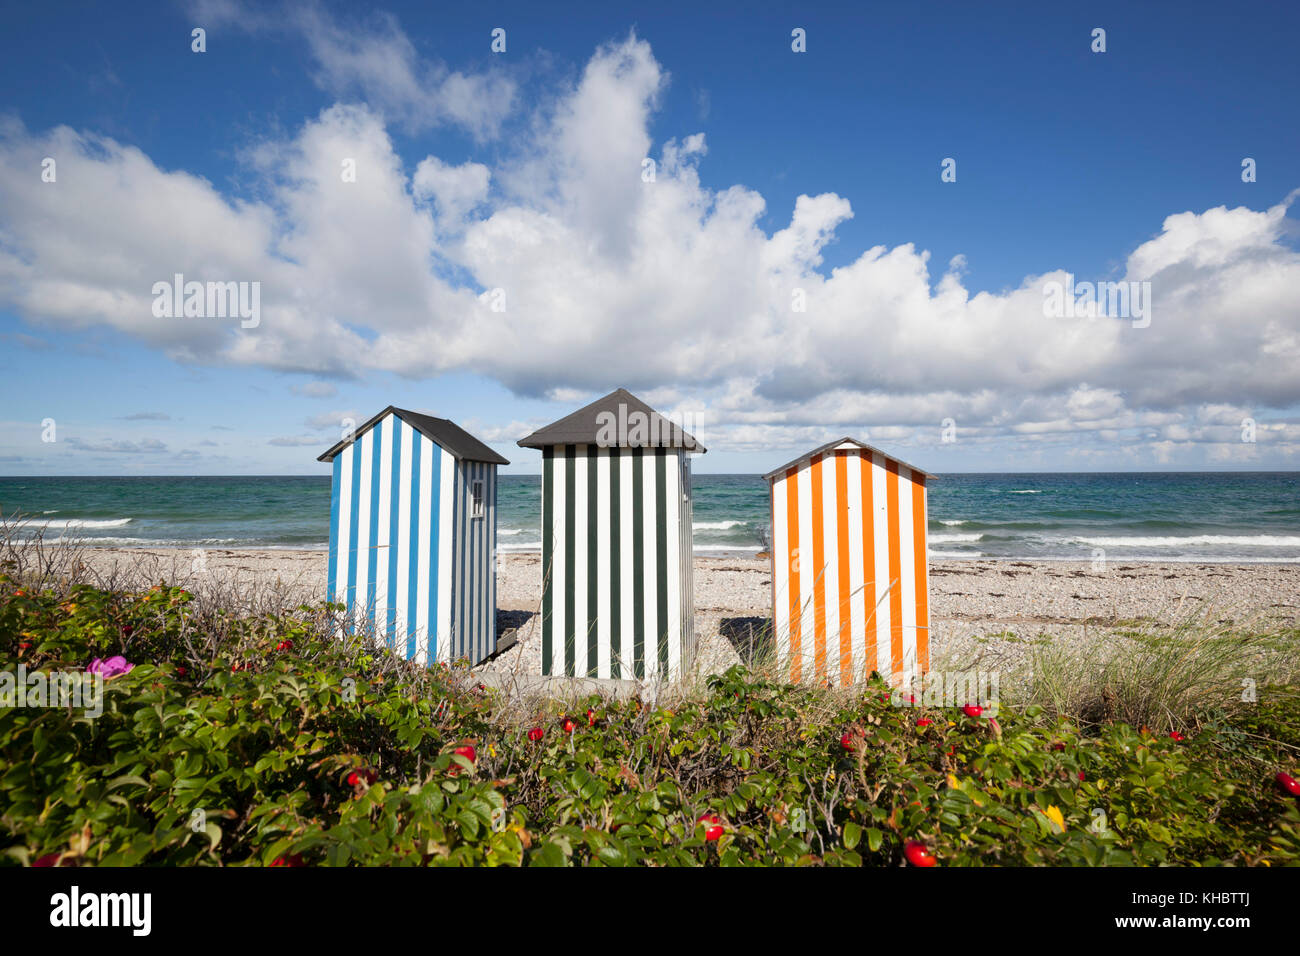 Colourful beach huts on pebble beach with blue sea and sky with clouds, Rageleje Strand, Kattegat Coast, Zealand, - Stock Image